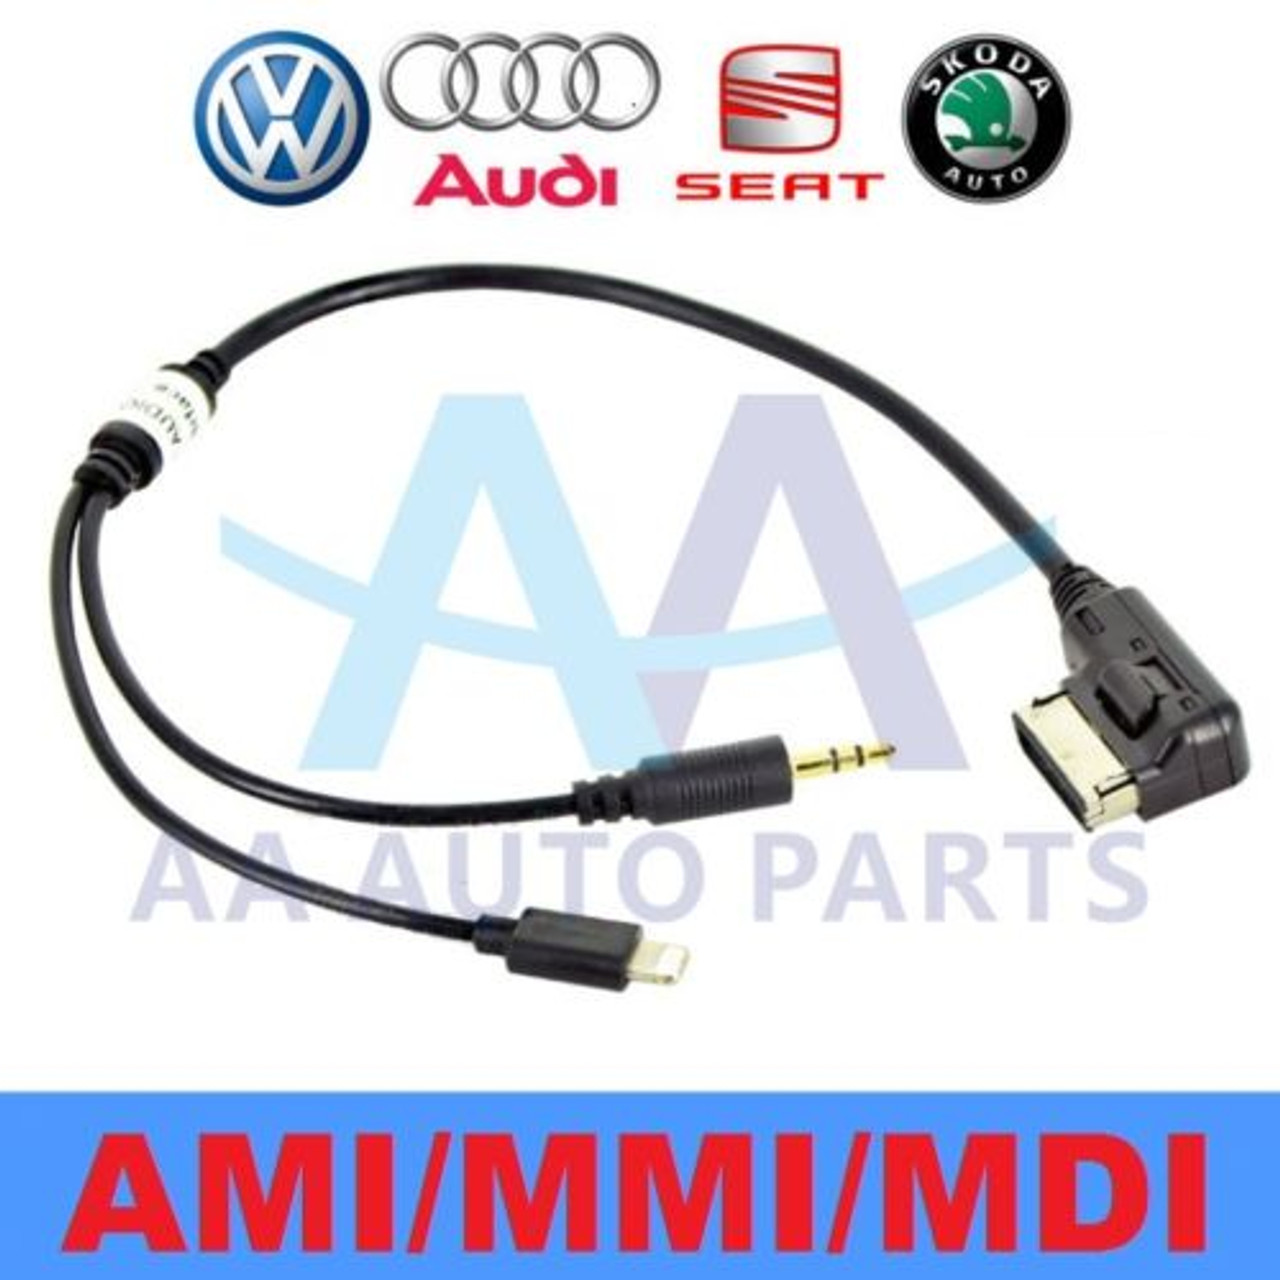 audi ami mdi mmi charger adapter aux cable apple iphone 5. Black Bedroom Furniture Sets. Home Design Ideas